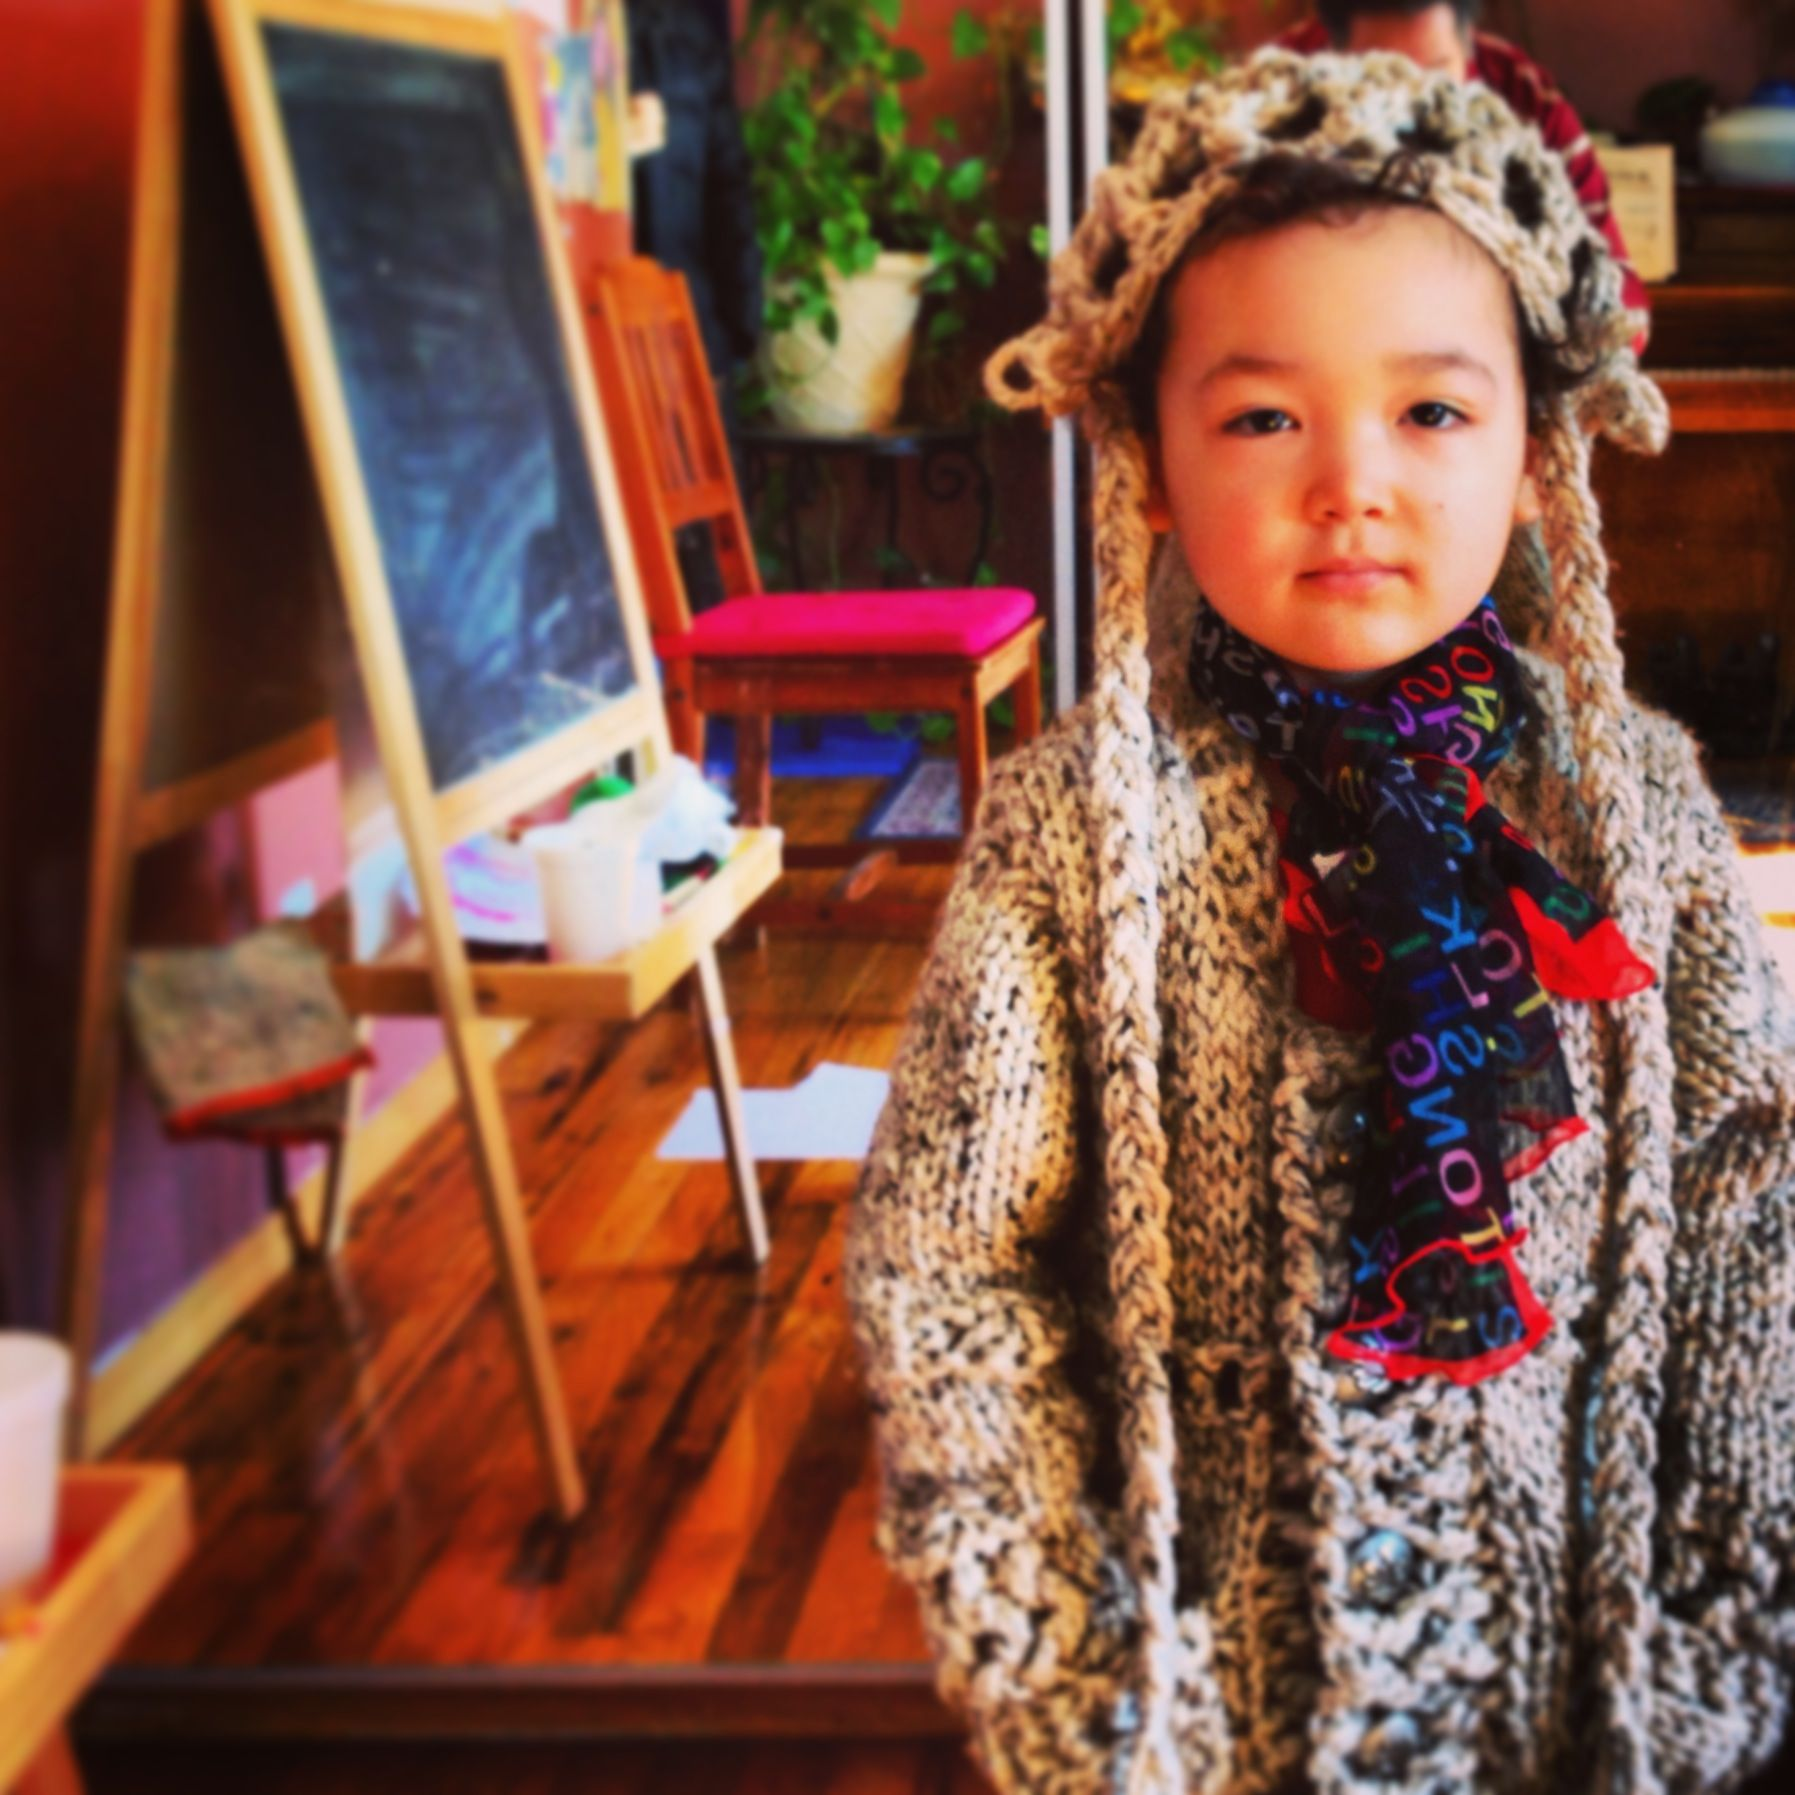 Sunshine, Chinese/Irish/Haitian. Cute mixed Asian baby!